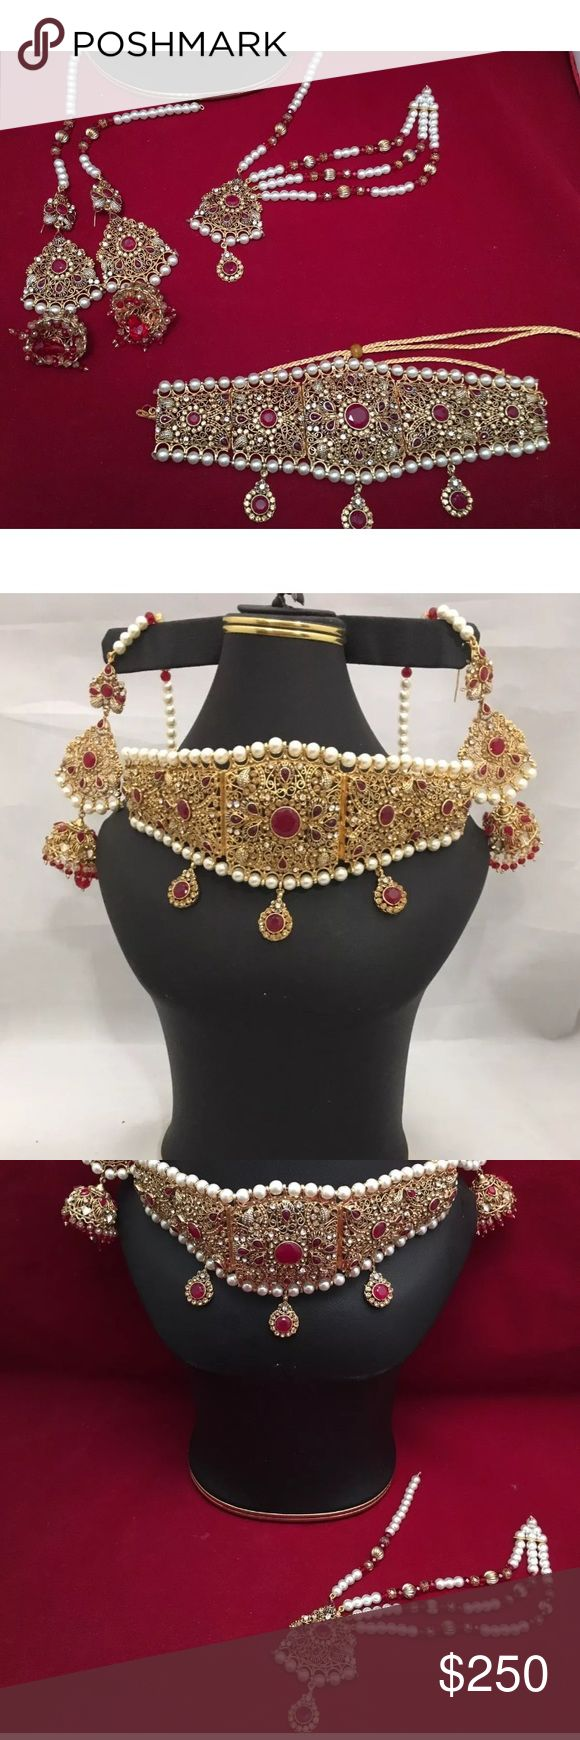 NWOT Indian Bollywood jewelry set NWOT Indian latest bridal Jaraao choker style jewelry set . Include big Jaraao choker mid wider part is 3.5 inches long . Full length of choker is 8 inches attached with rope to make loose or tight .Long jhomki style earrings are 5 inches long comes with saharas .Matha patti is one side style . Set attached with rhinestones, and imitation red stones and big Pearl Beads. Extremely beautiful in front and very big set pictures are not doing justice. Jewelry…